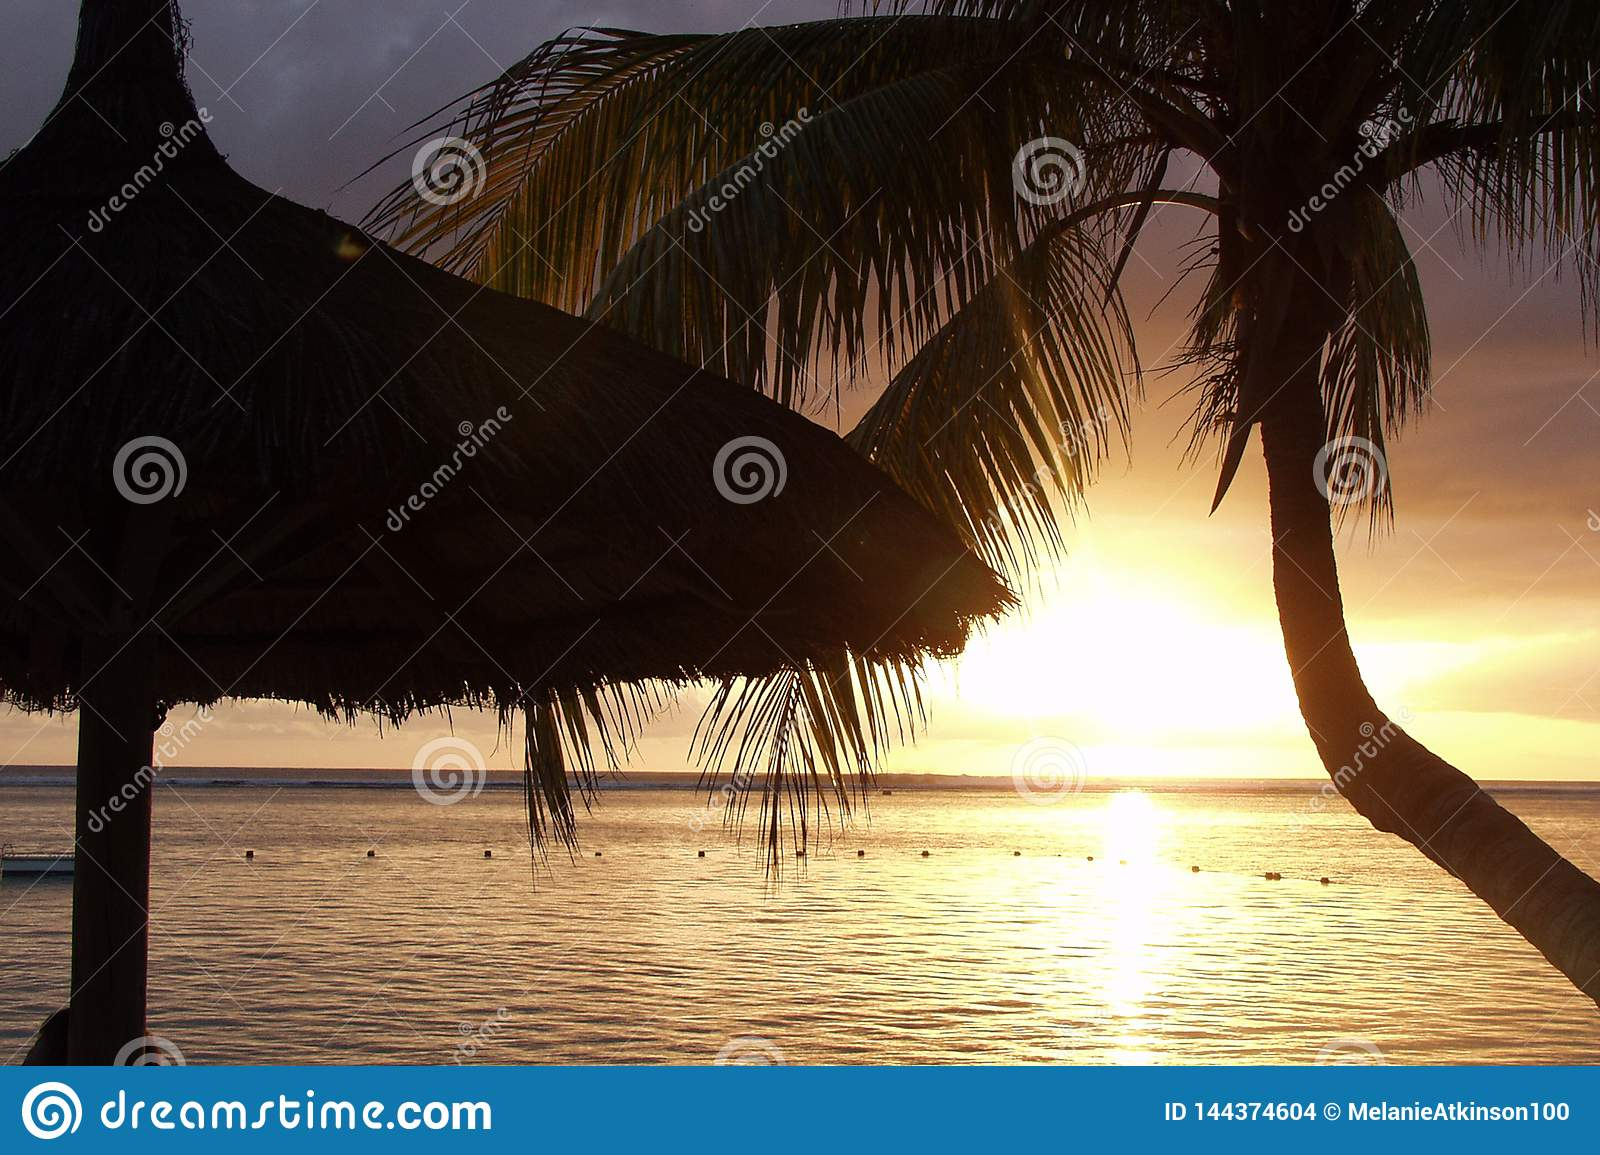 Silhouette of hut and palm as sun sets over the ocean